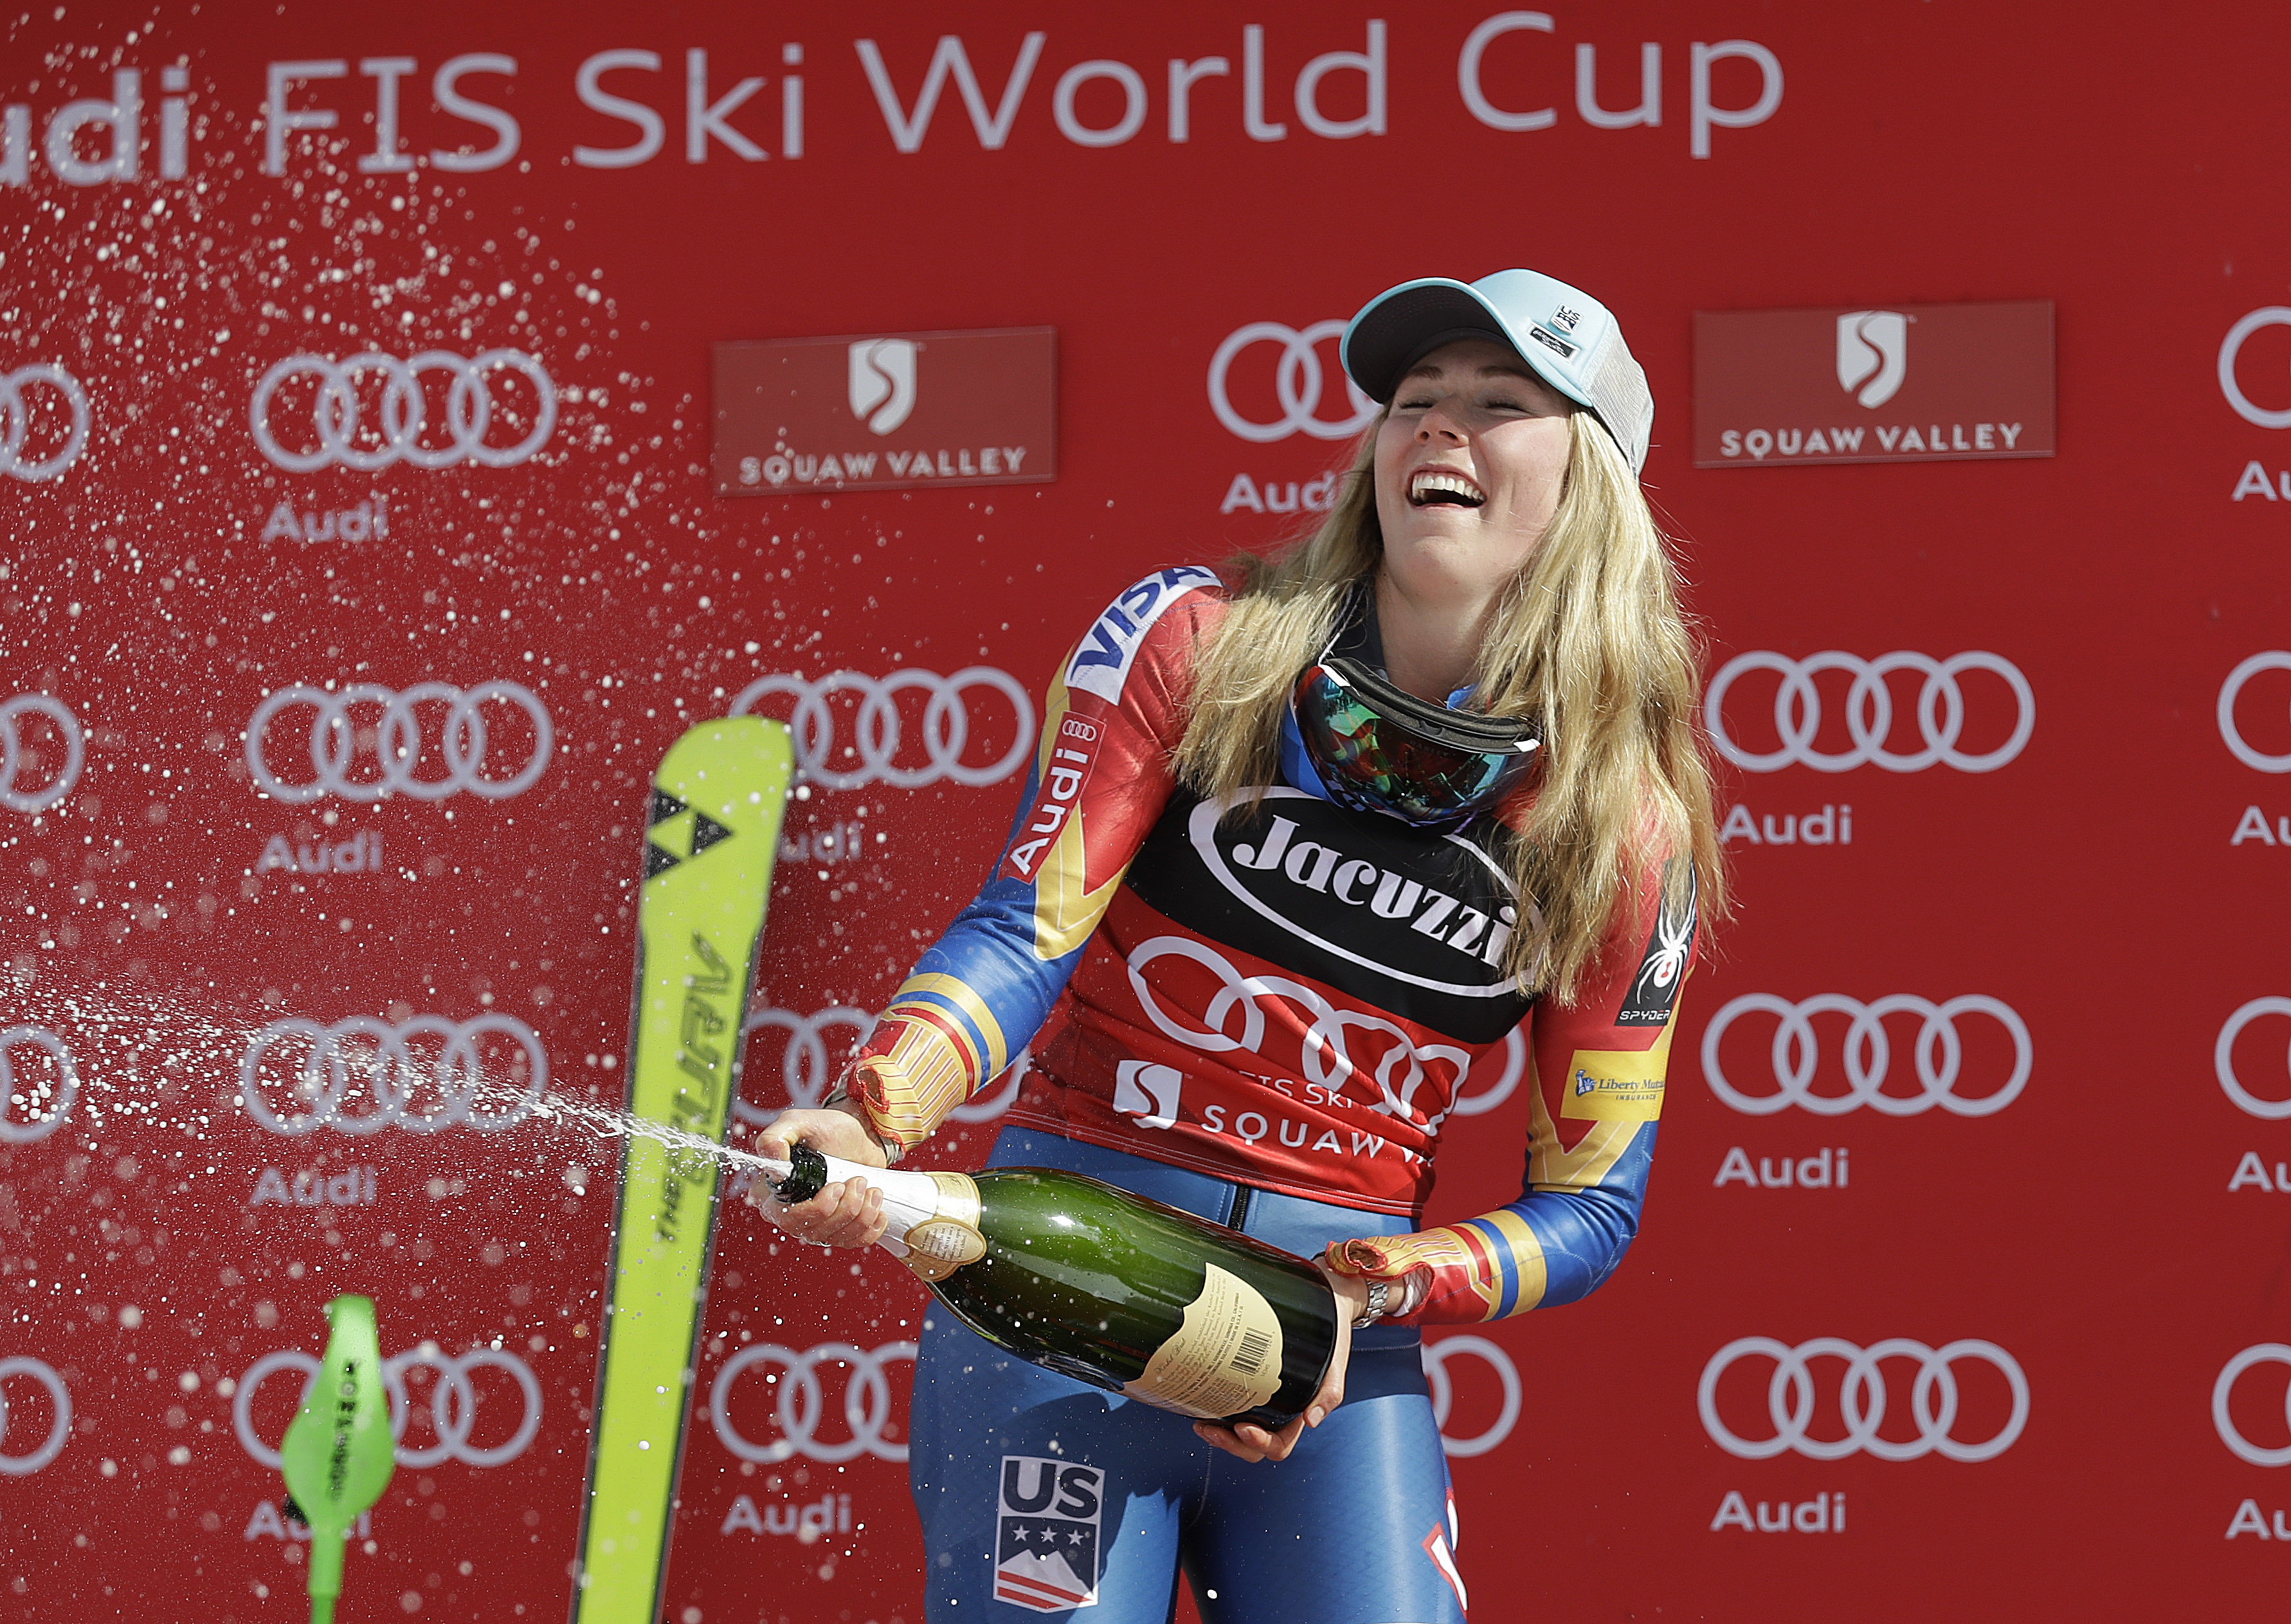 Mikaela Shiffrin celebrates after winning the women's World Cup slalom competition Saturday, March 11, 2017, in Olympic Valley, Calif. (AP Photo/Marcio Jose Sanchez)